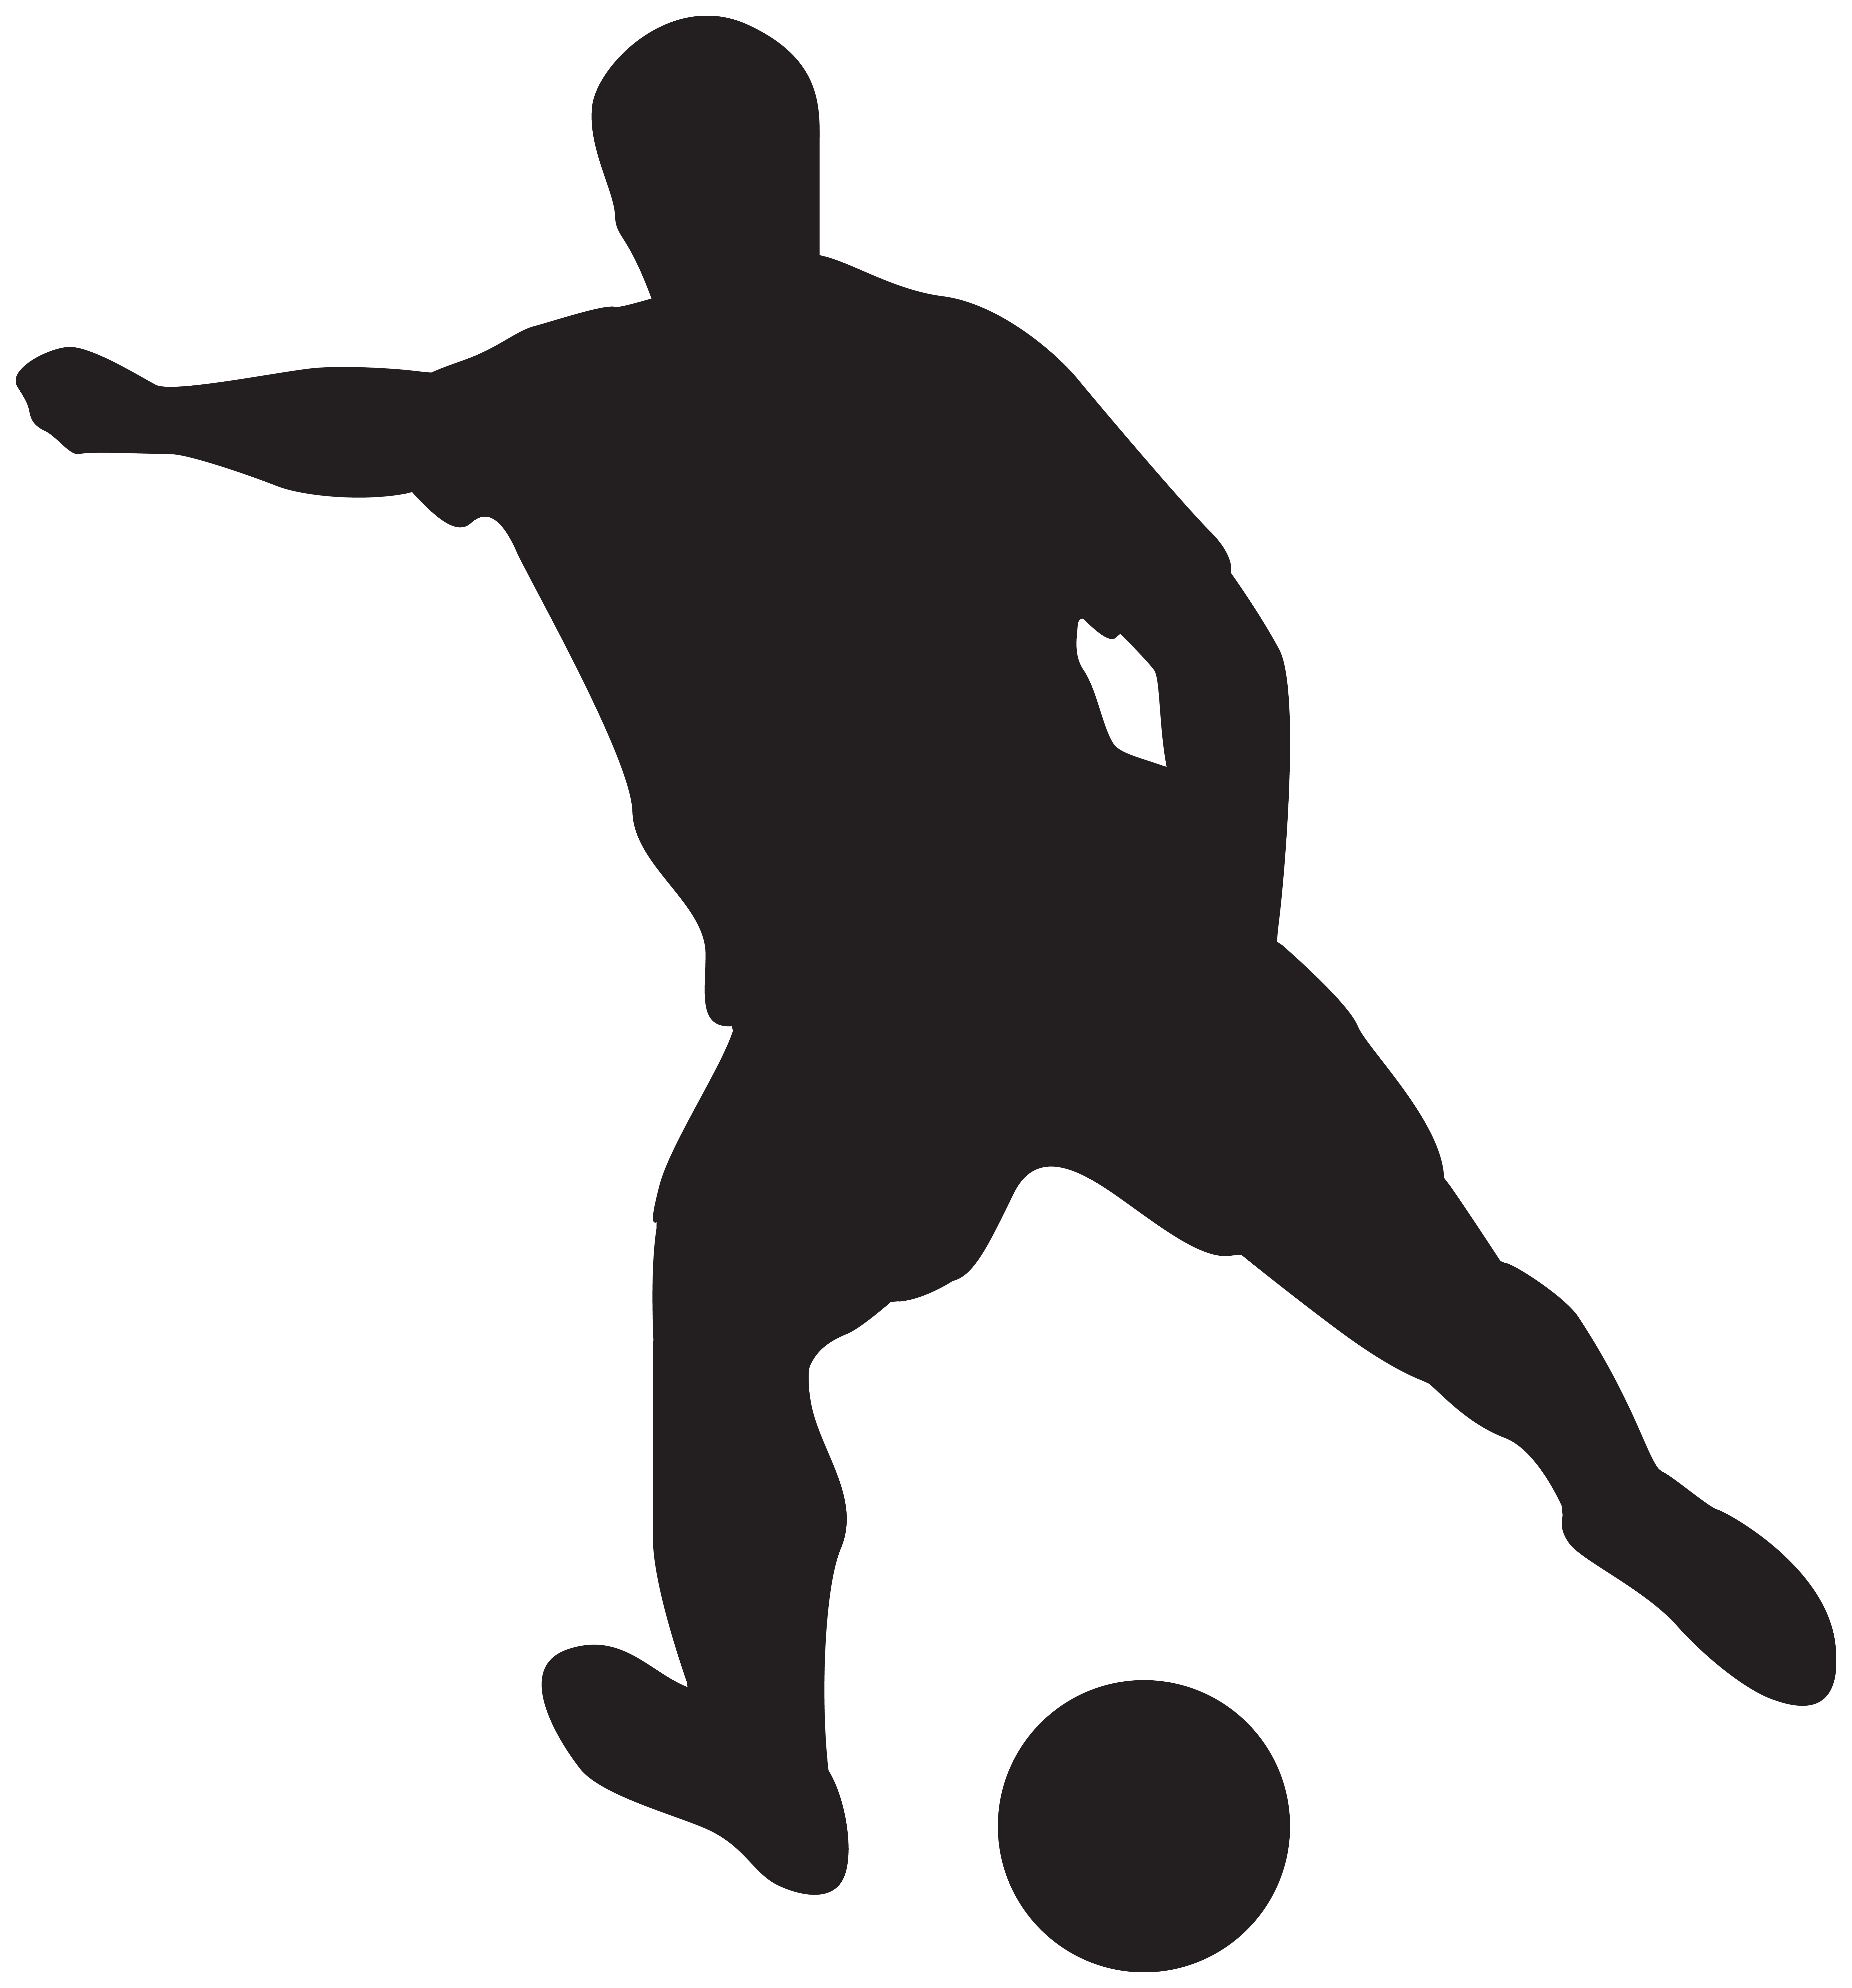 Soccer silhouette clipart clipart library download Soccer Player Silhouettes Clipart Image   Gallery ... clipart library download